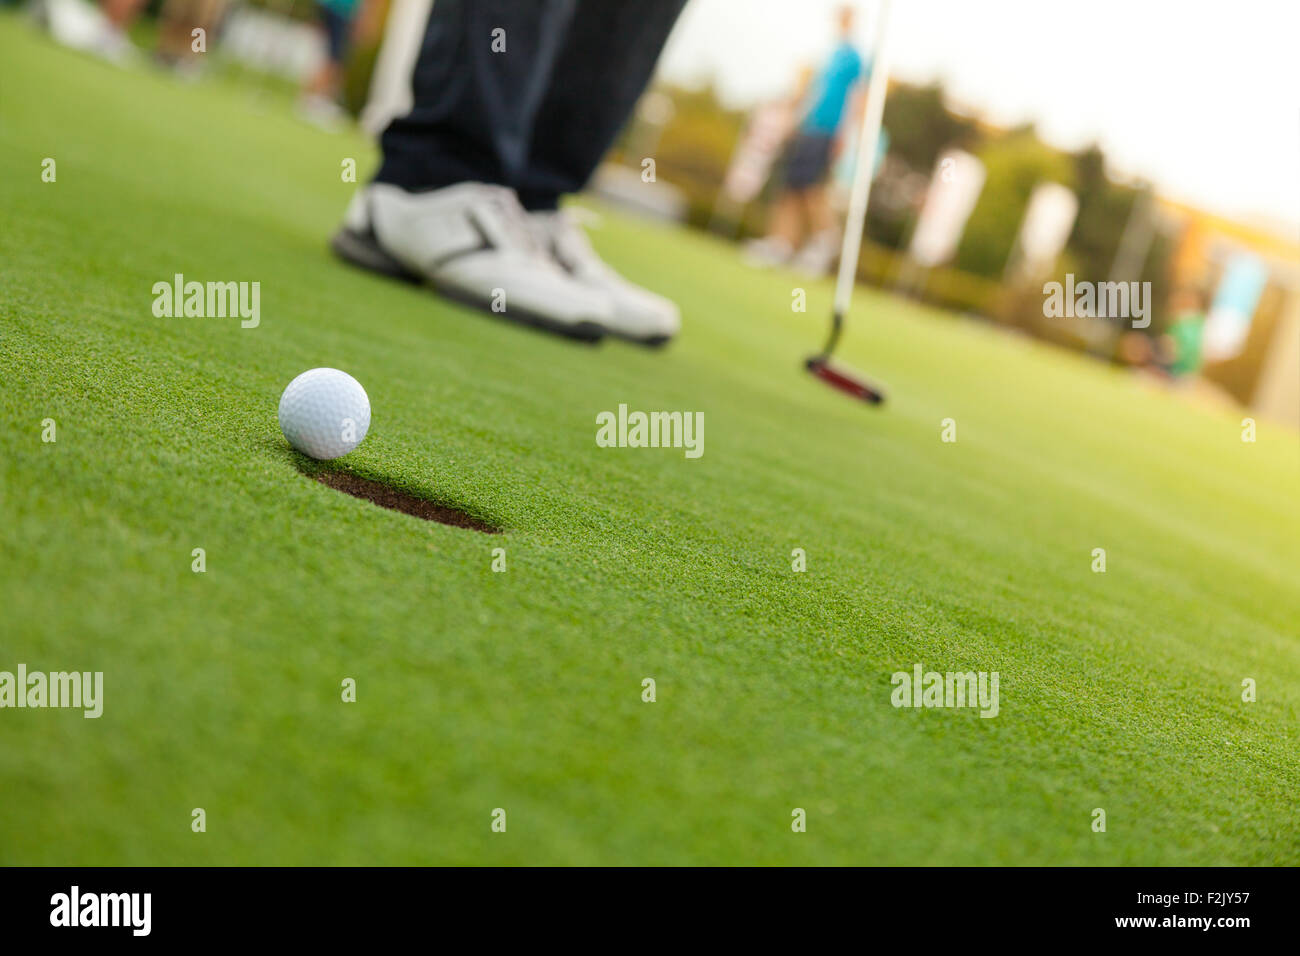 Golf player at the putting green - Stock Image